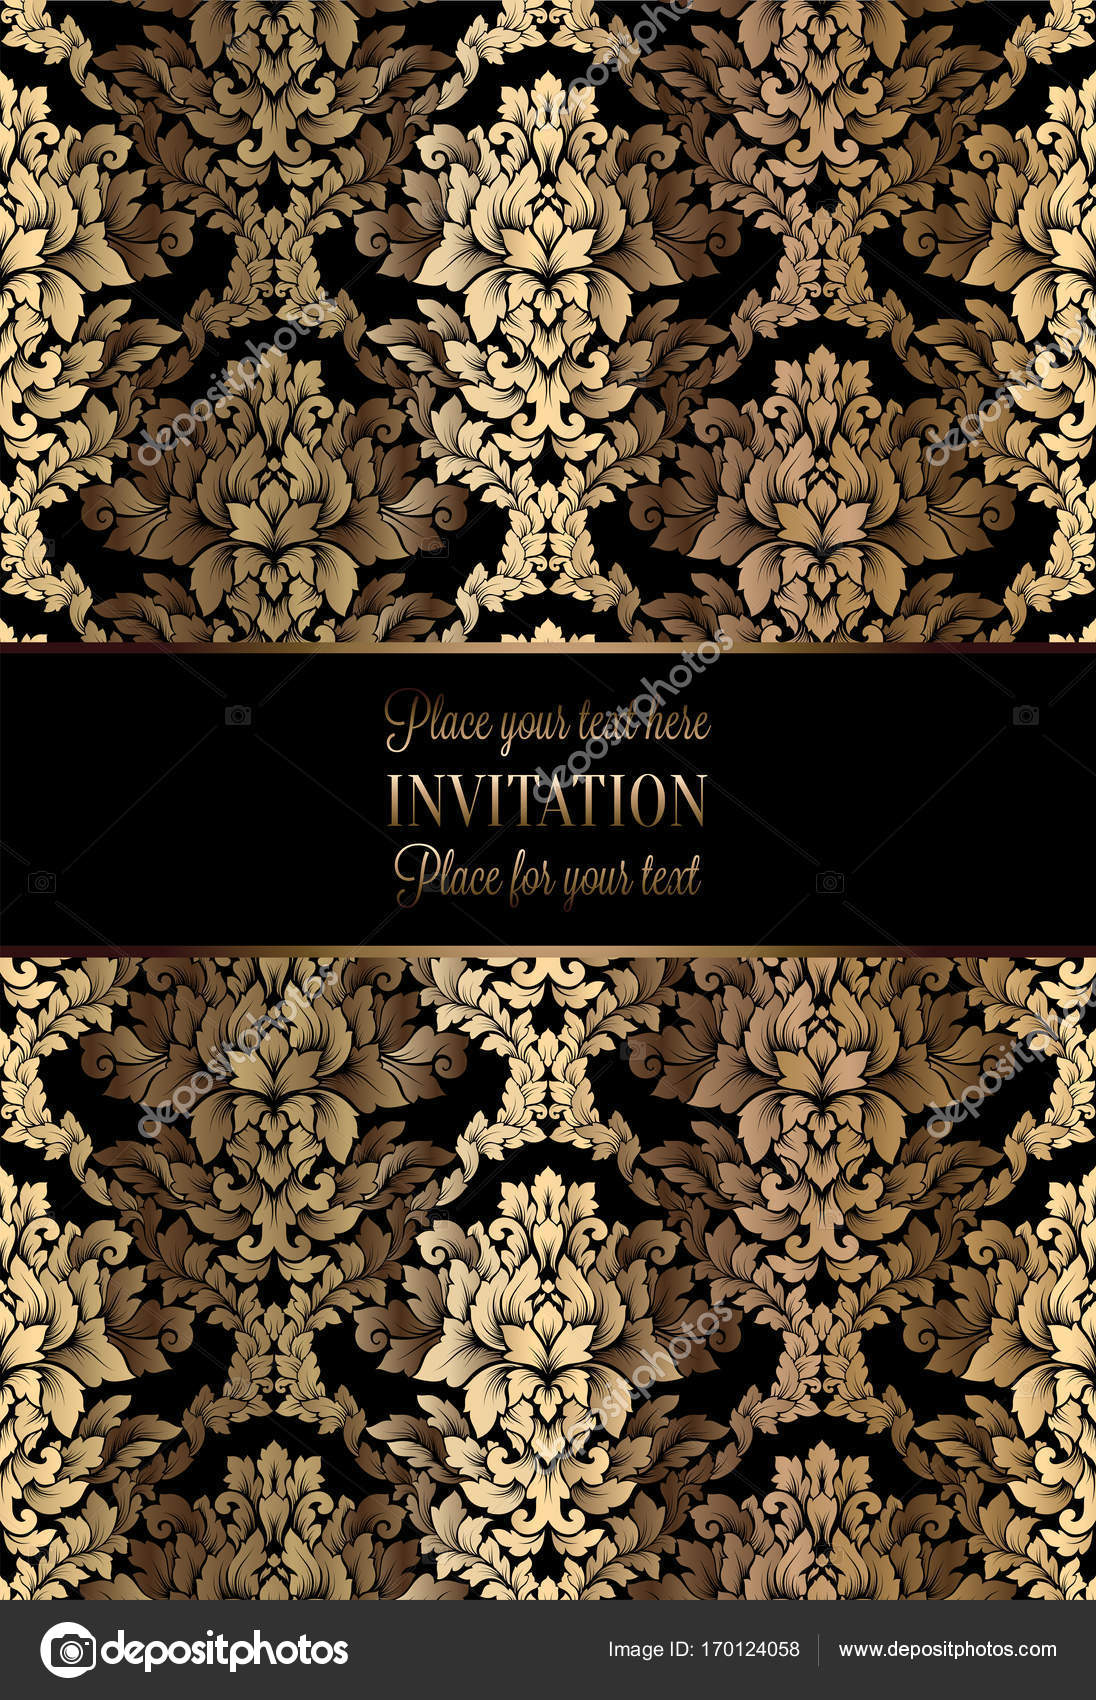 vector luxury foliage with gold floral vintage pattern for banner